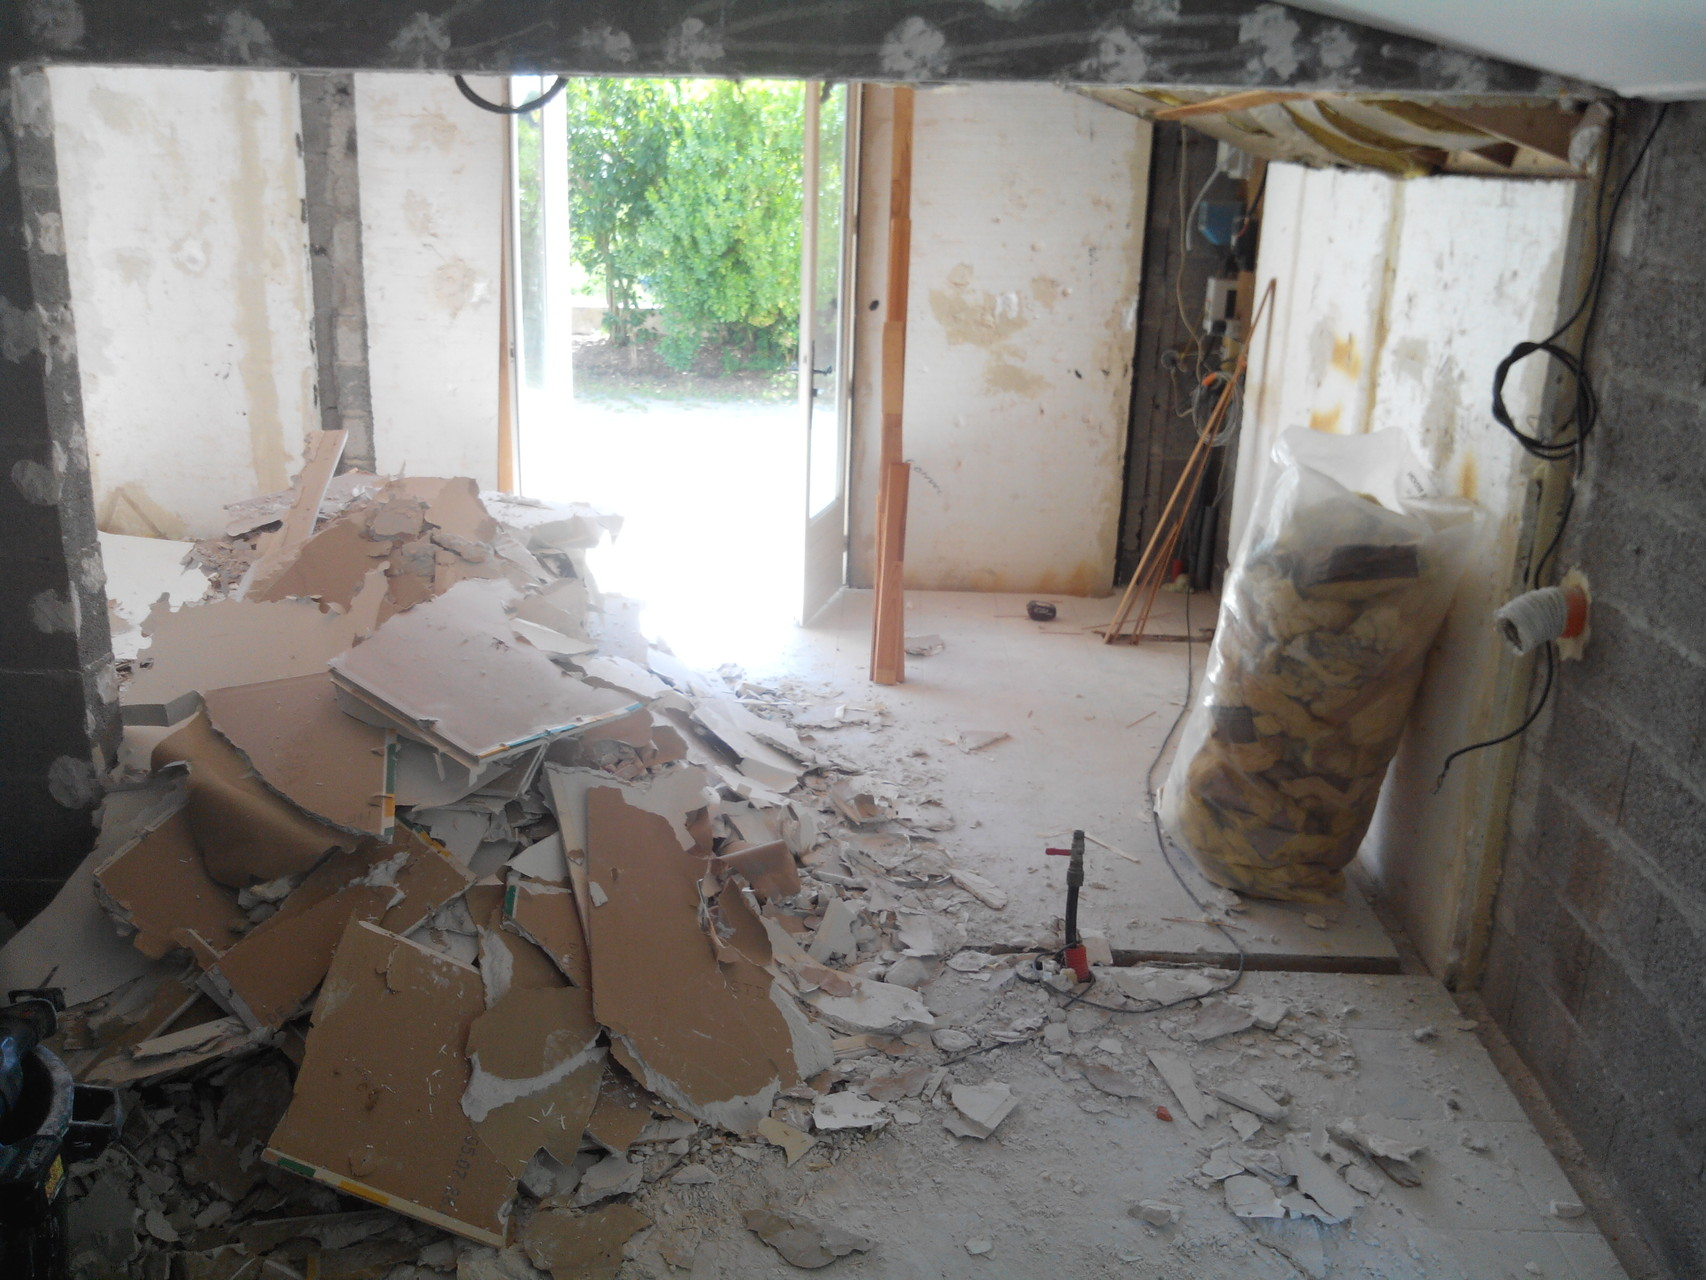 Renovation maison de 1970 plaquiste isolation etanch it l 39 air locati - Maison 1970 renovation ...